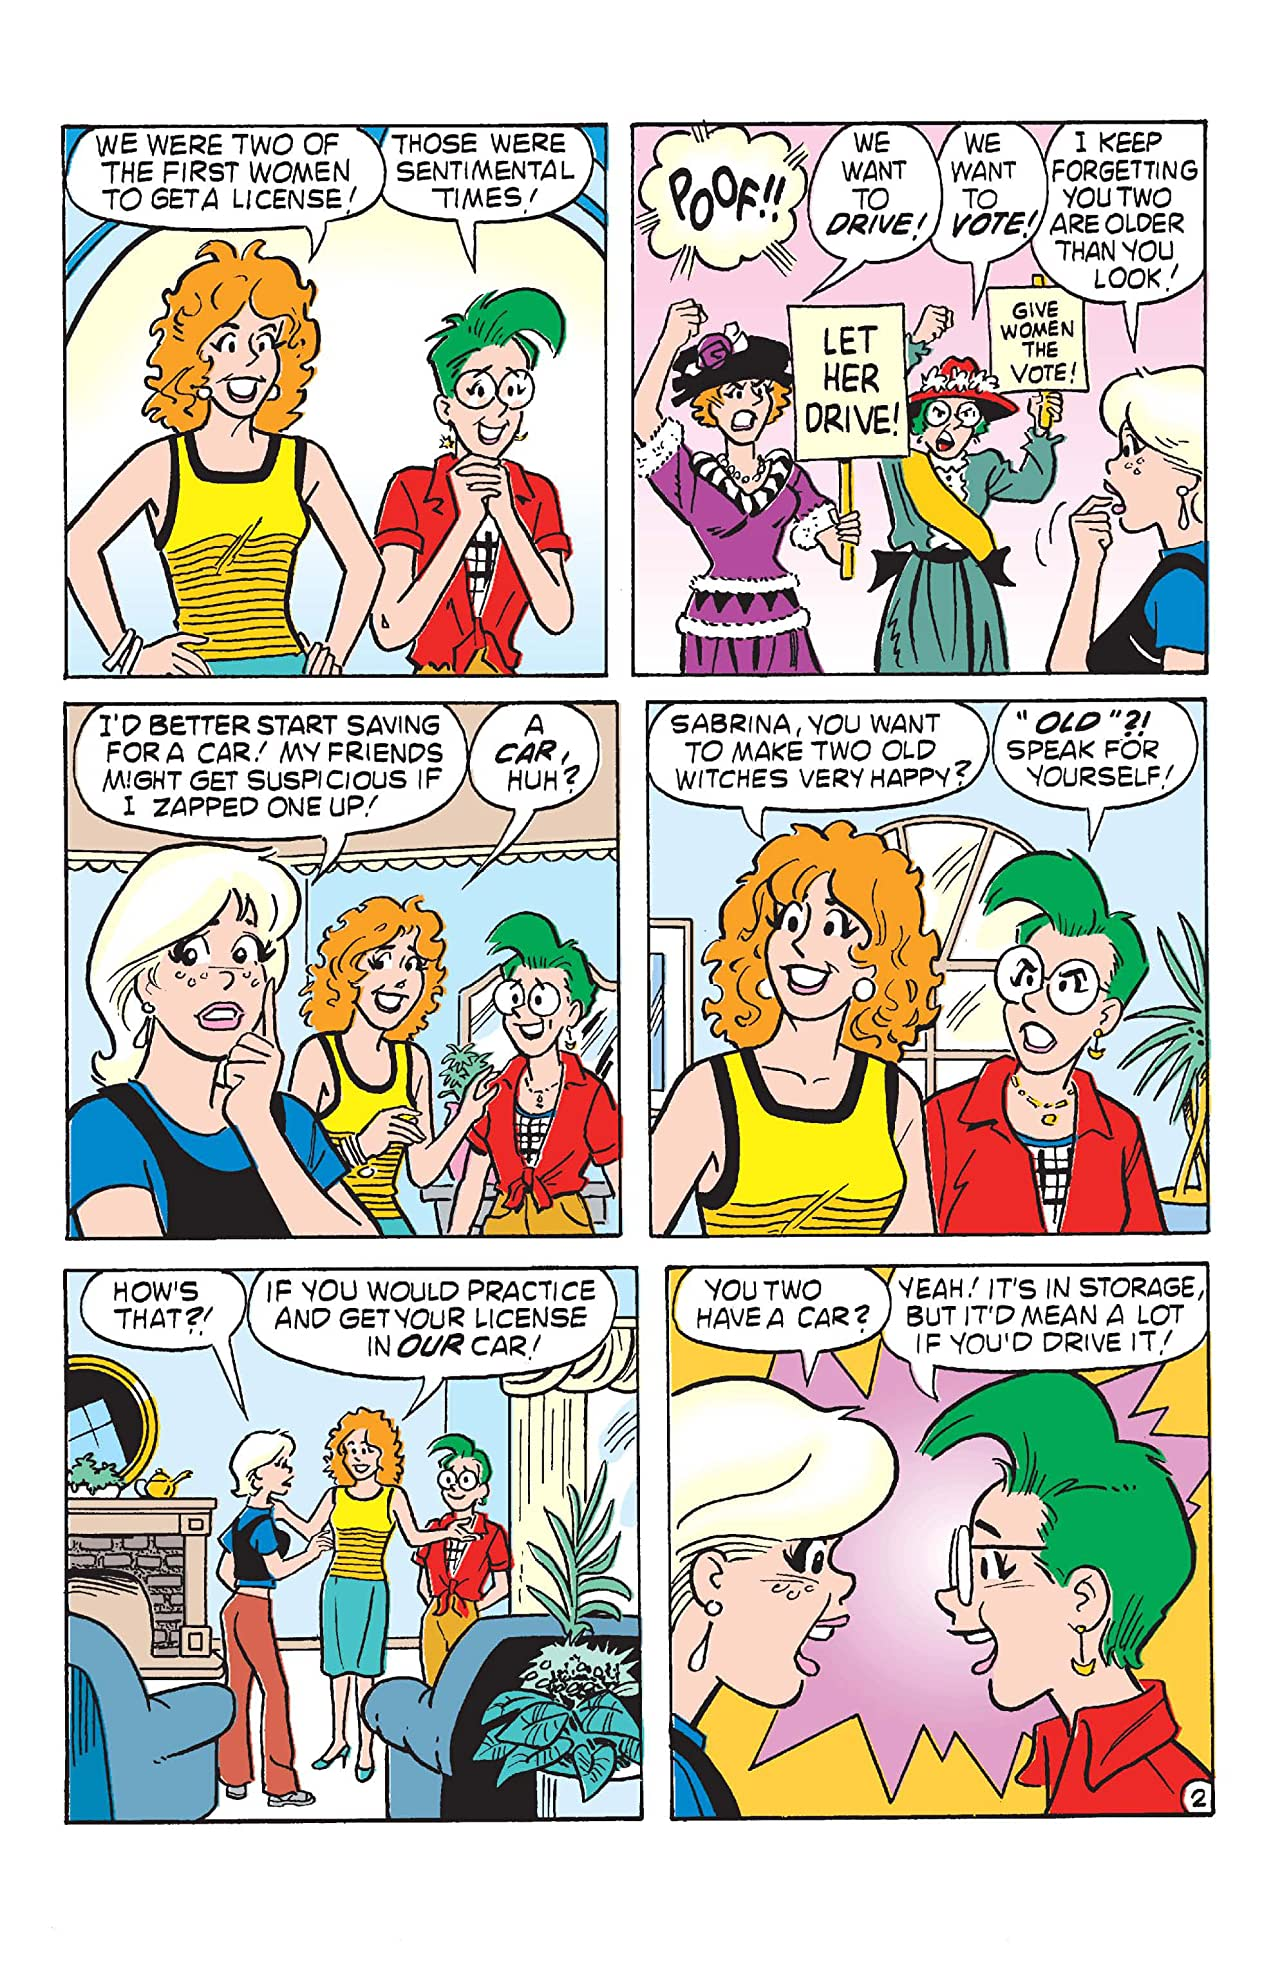 Sabrina the Teenage Witch #5